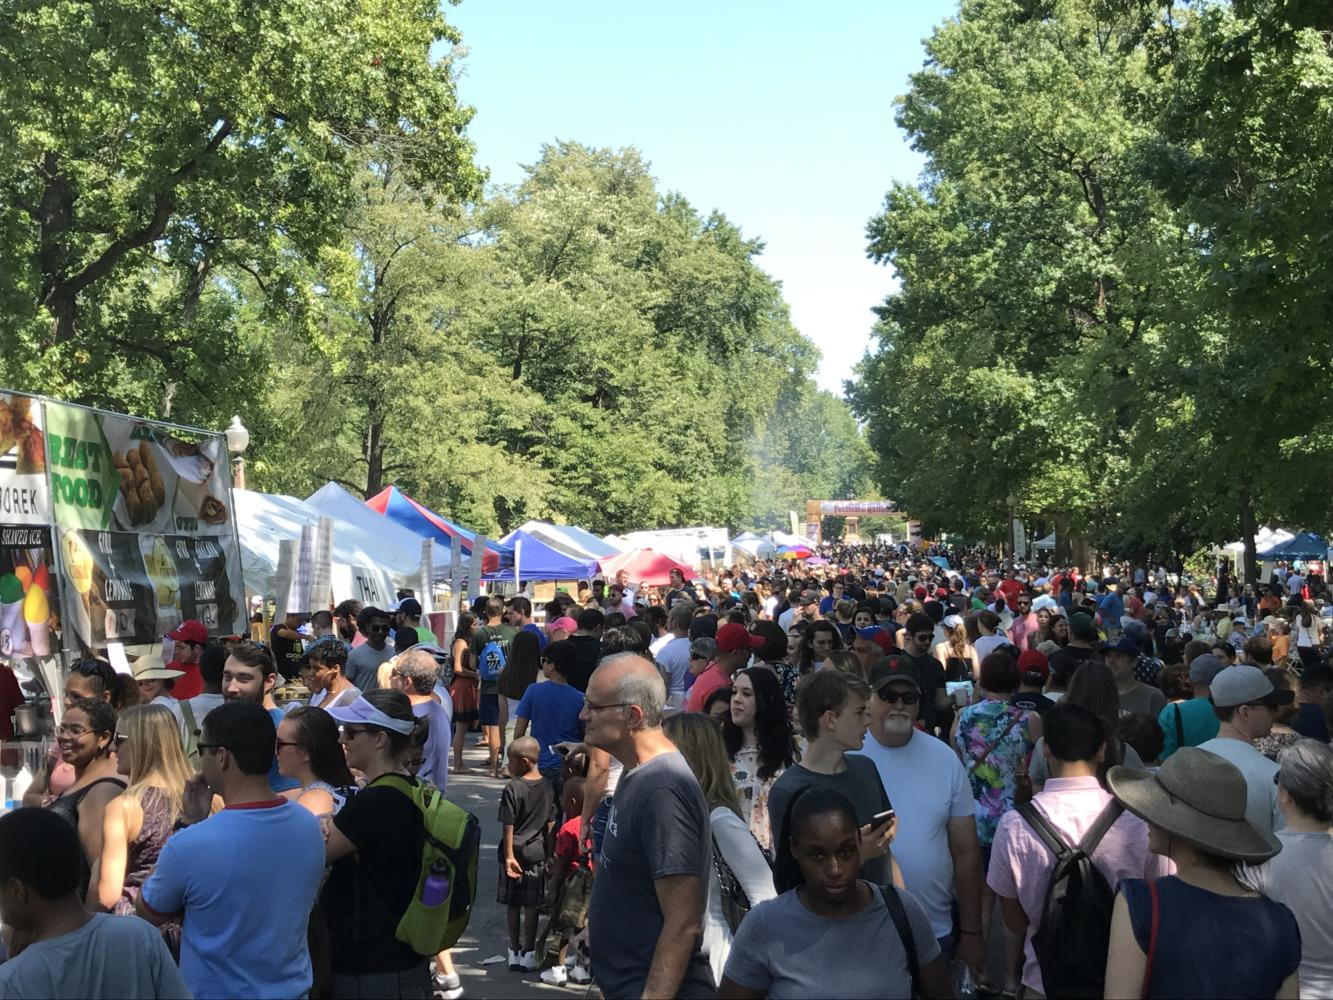 Crowds enjoy the day in Tower Grove Park at Festival of Nations. Photo by Hannah Esker.